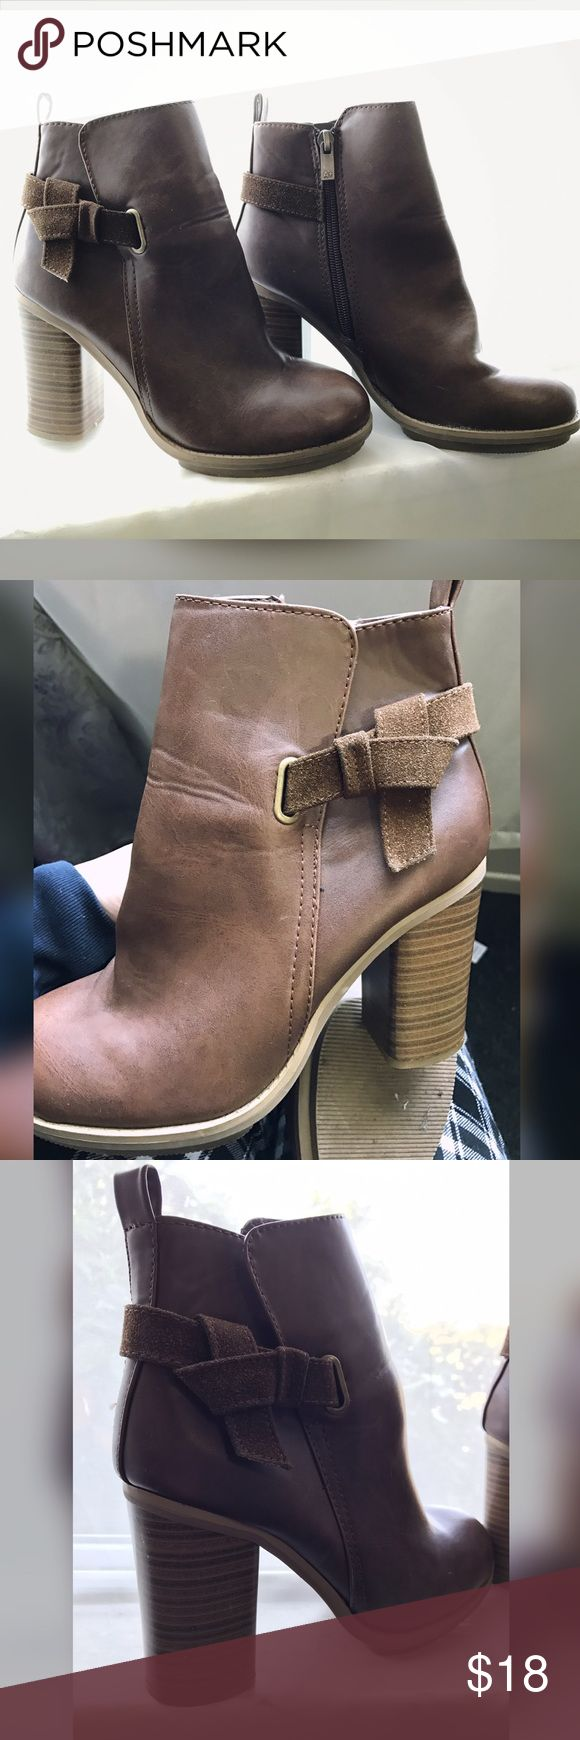 """💐Cute Ankle Boots Gently Worn.  Color: Brown Size: 7.5  Heel Size: 3.5 """" Zipper on sides for easy fit.   Cute little bow in dark brown.  The brand is from Target.  Worn a couple of times. In great shape, still have a lot of life to give.    🌸Not interested in Trading.  🌸I will accept Most Reasonable Offers.  🌸Ship Same day, or Next.  🌸Smoke Free Home.  🌸Pet Free Home.  🌸Most items are New with Tags. Used items are in Great condition.  🌸If you have any questions please message me…"""